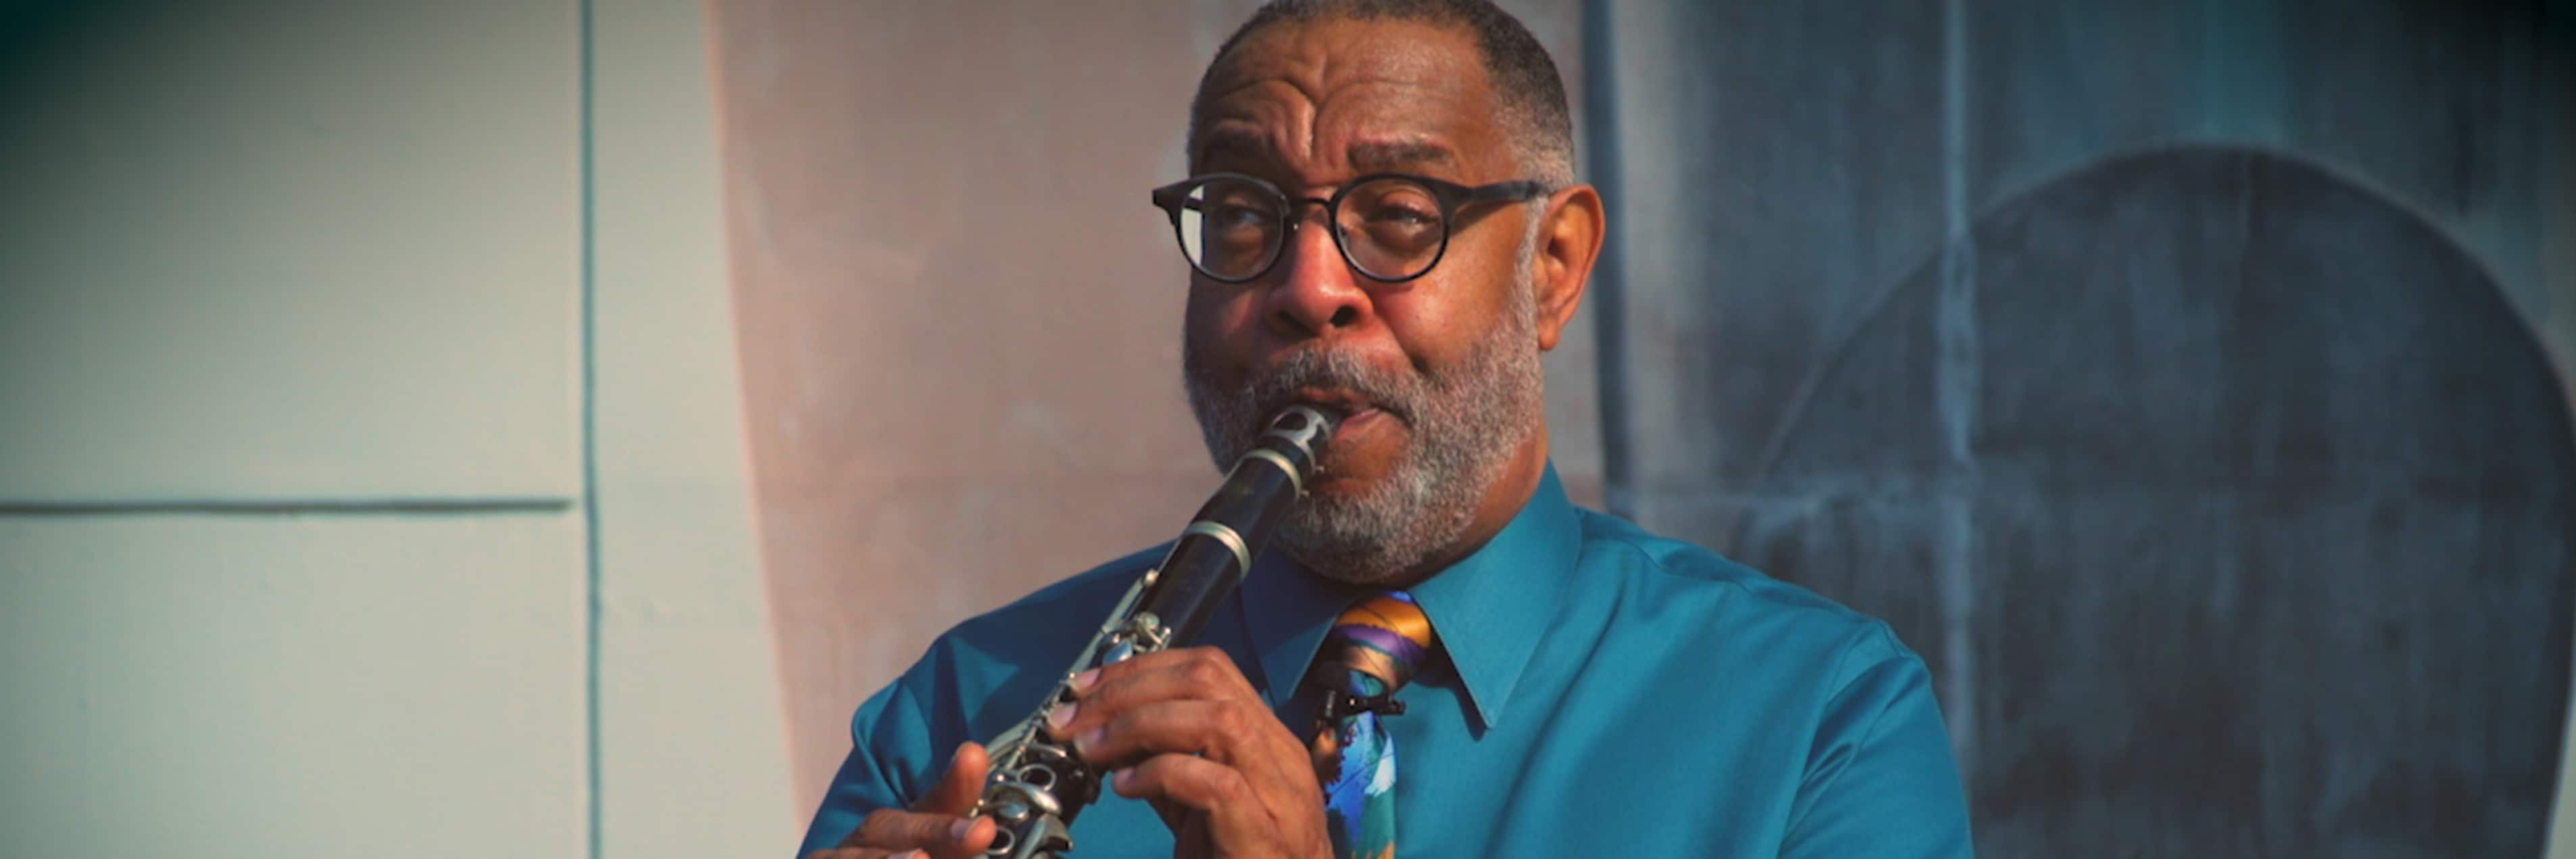 Artist Extras: Sounds of New Orleans with Dr  Michael White